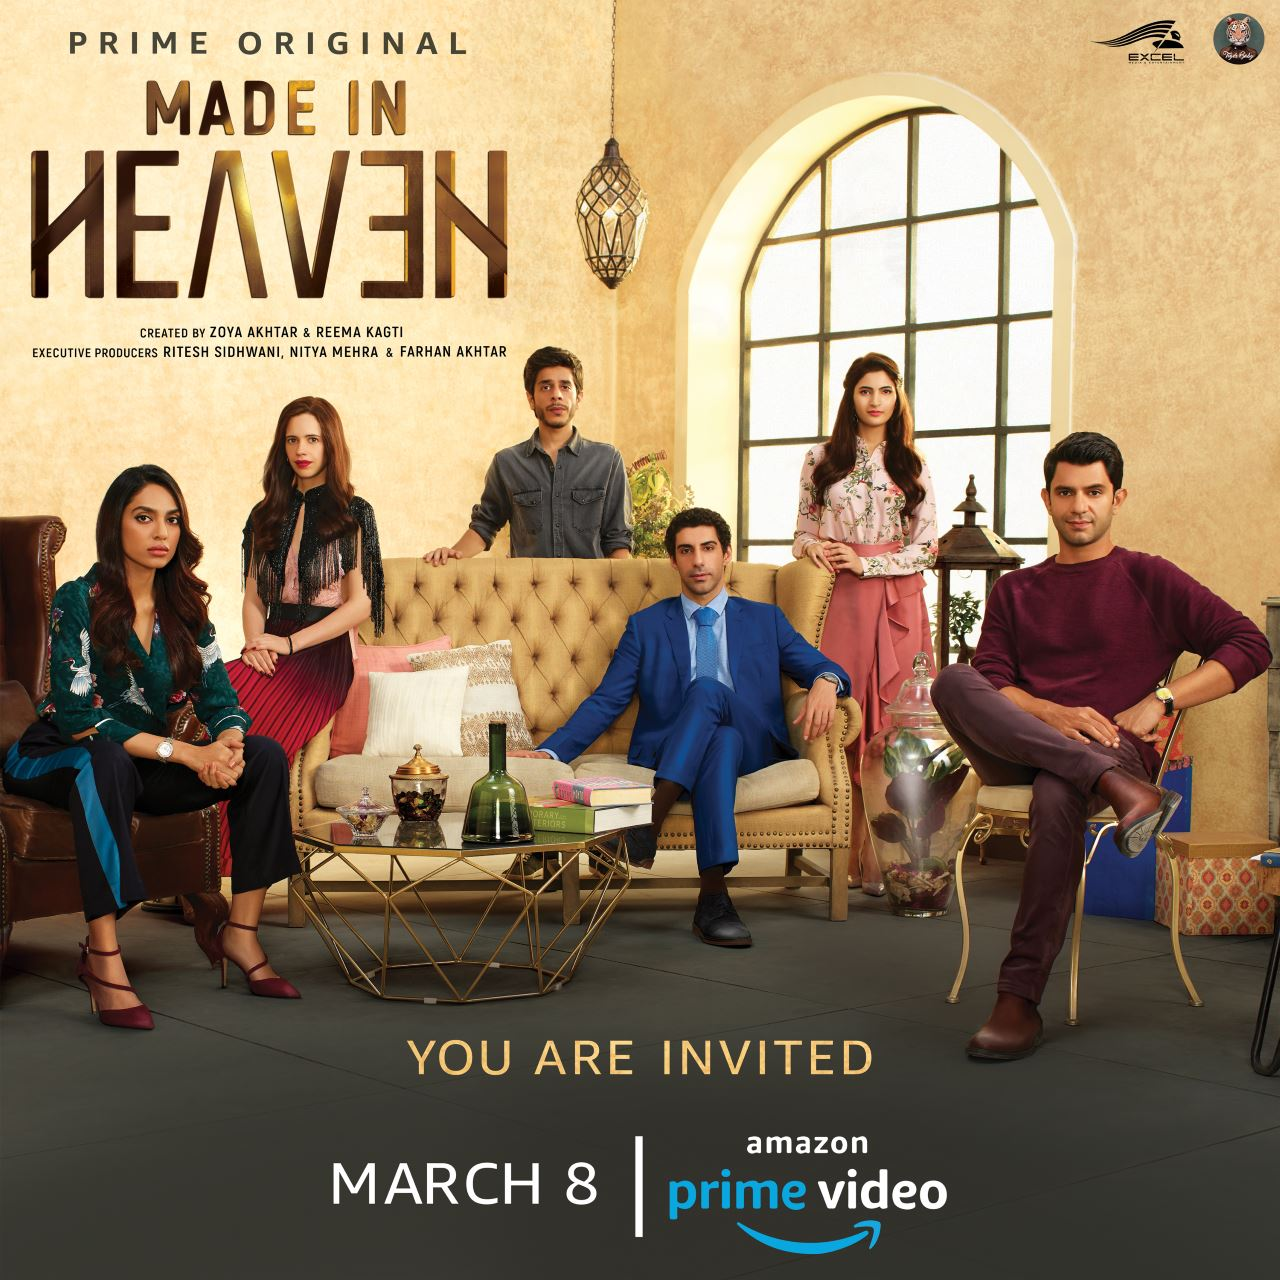 amazon prime video made in heaven first look Amazon Made in Heaven Prime Video India